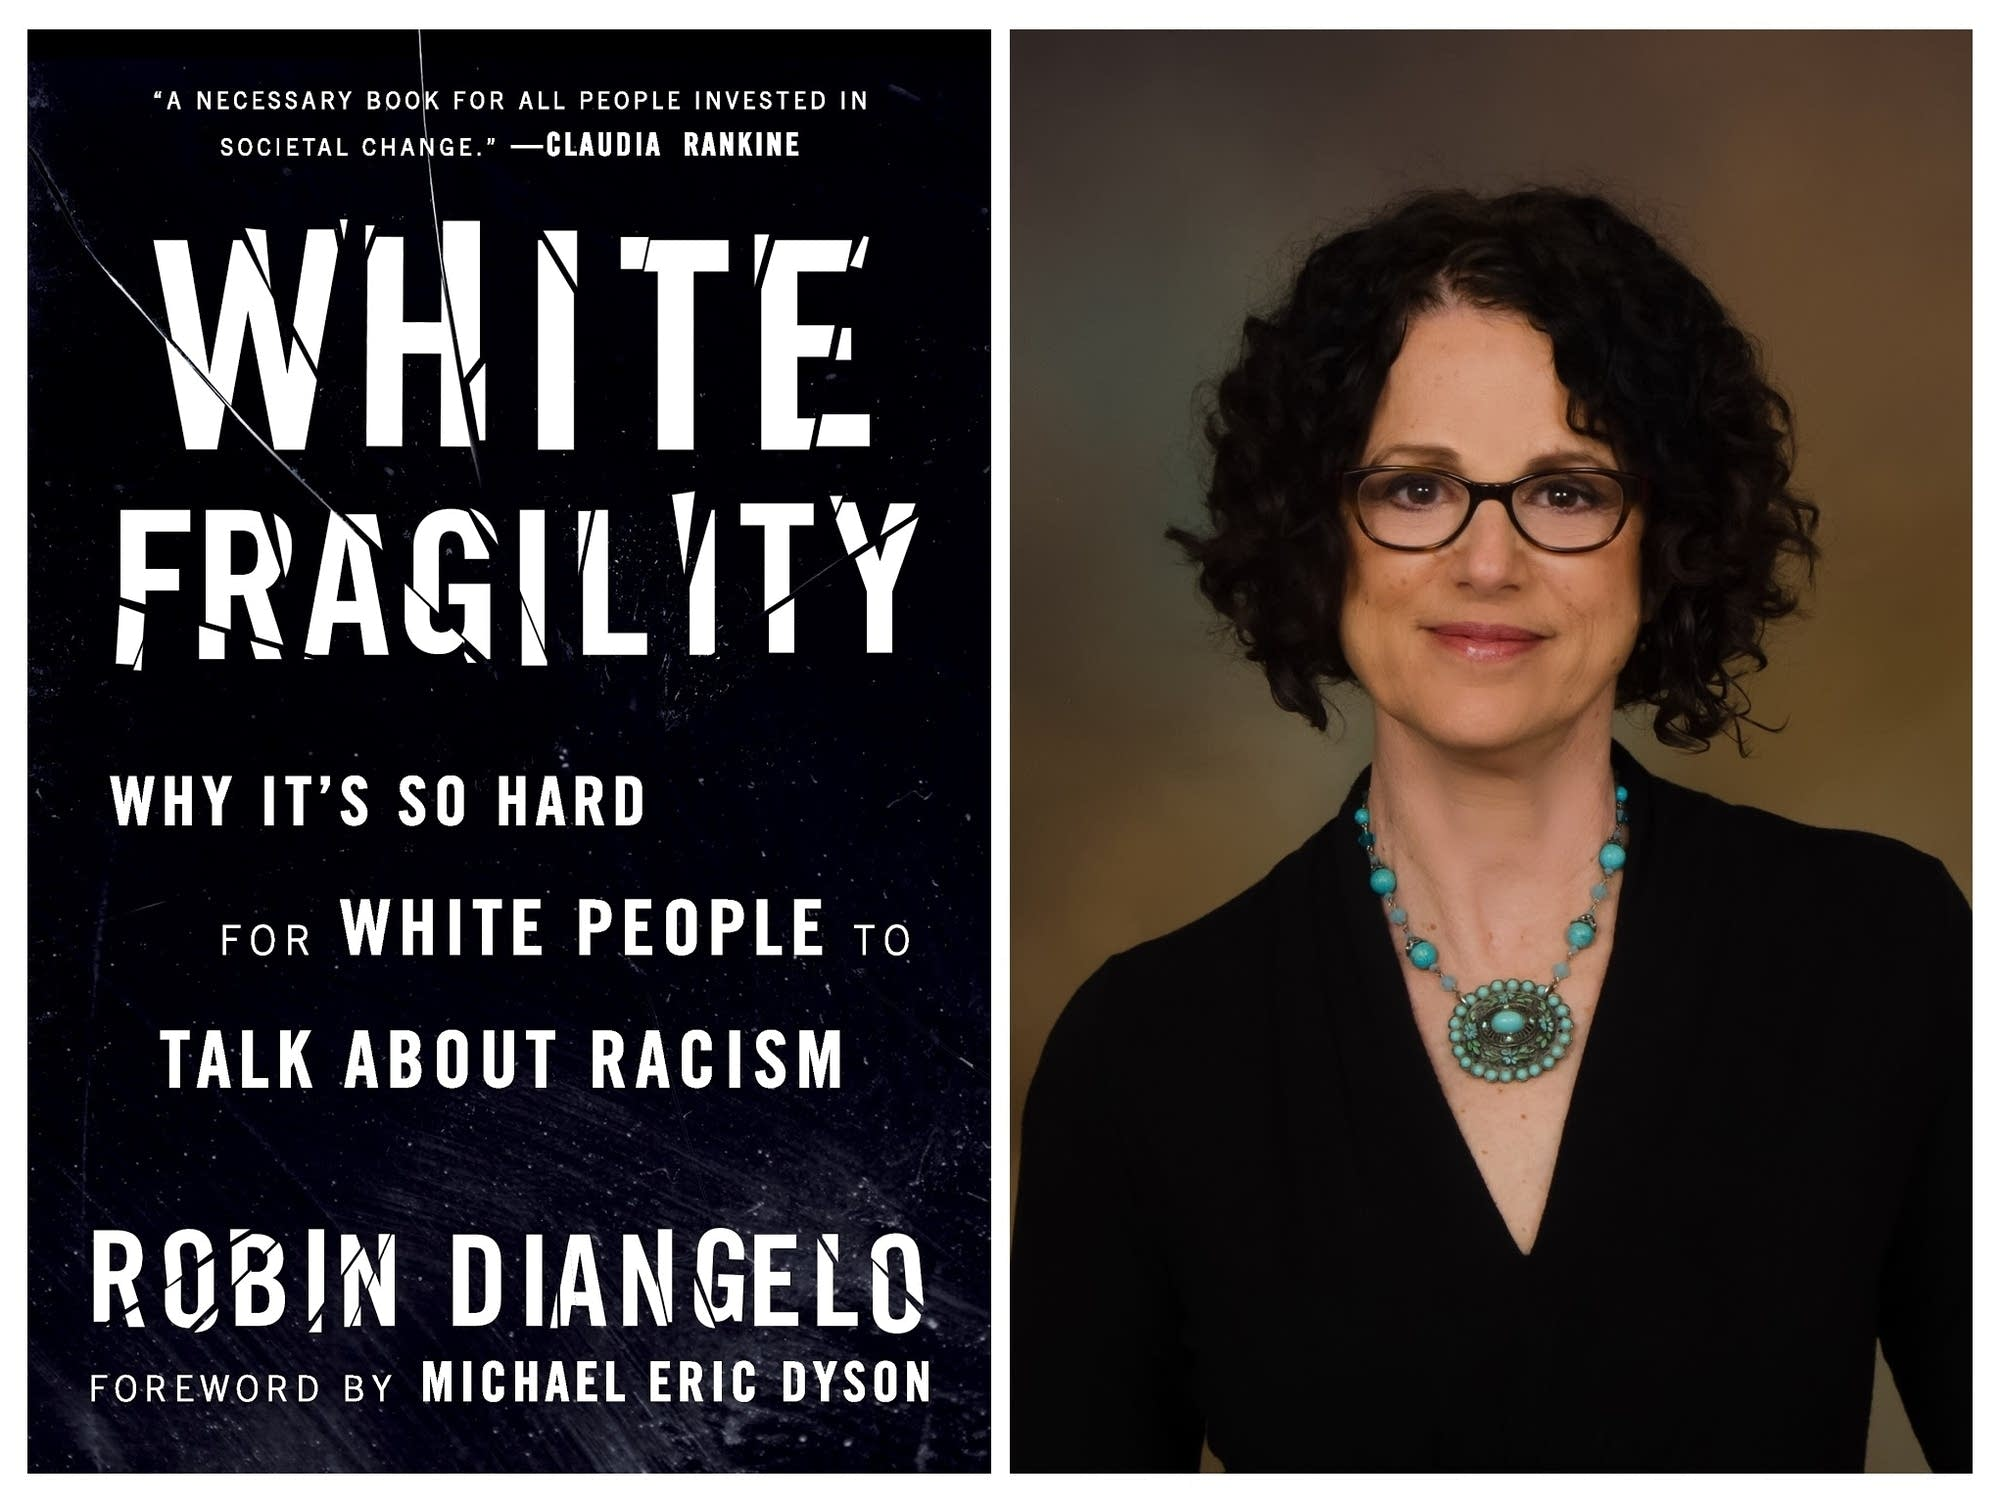 Michael Brown on For Those Who Love Justice, 'White Fragility' Cannot be an Issue